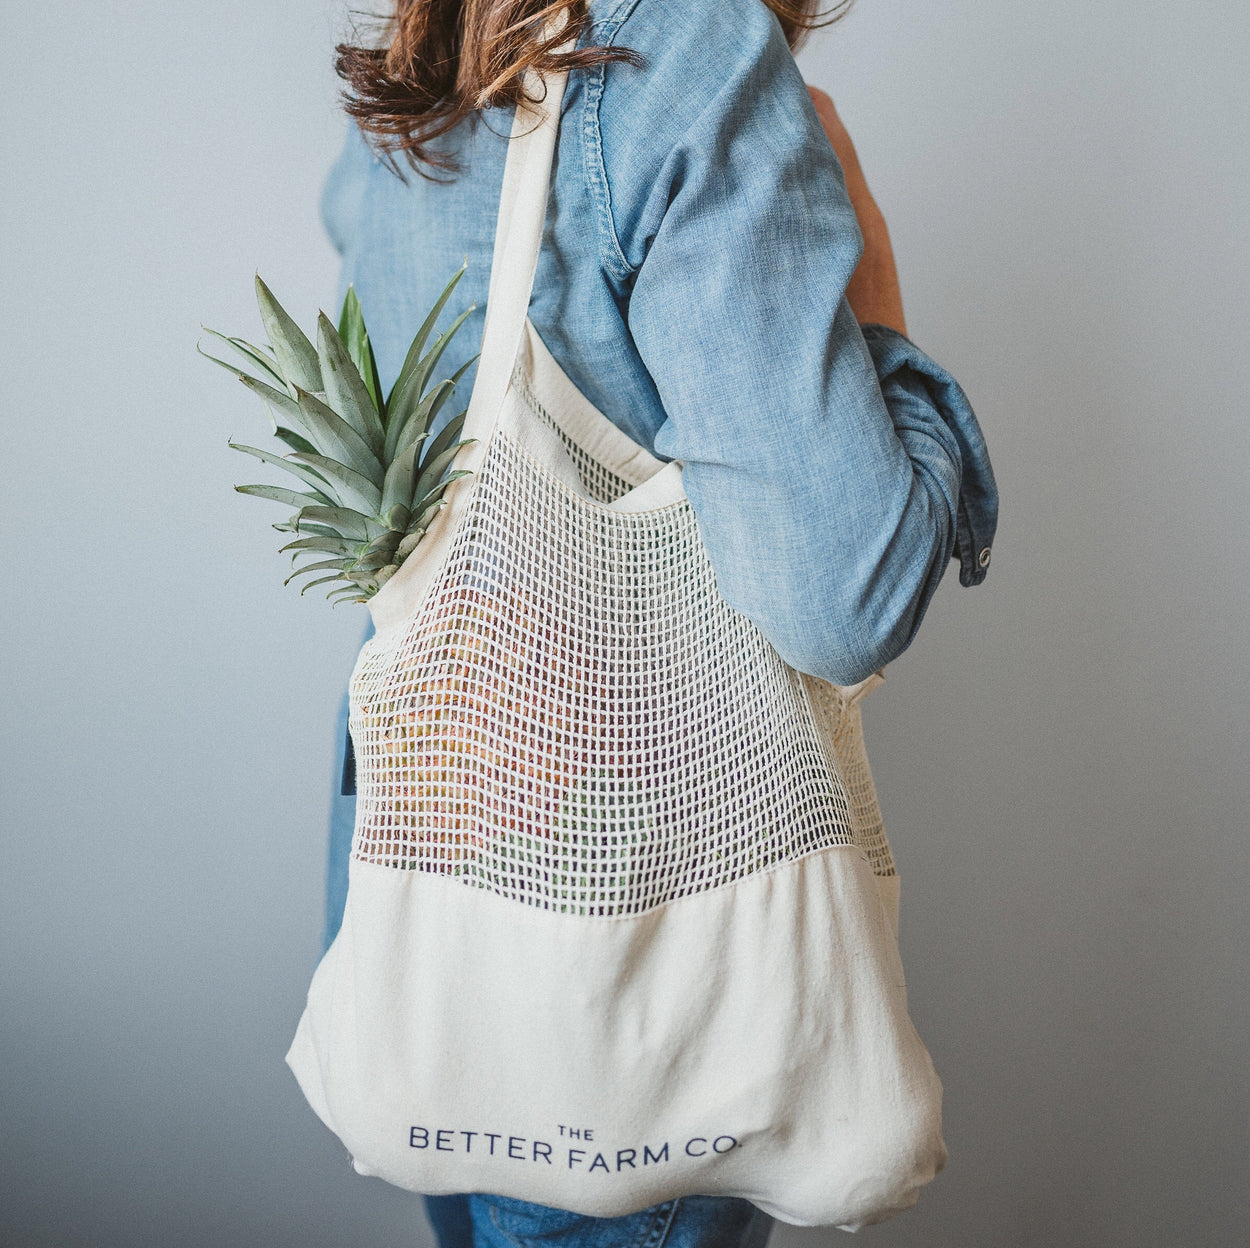 The Better Farm Co's Perfect Blend Bag is shown slung over a woman's shoulder, holding various bulk and produce items. The organic, sturdy canvas bottom keeps your groceries tucked away where they should be, without tops poking out of your string bag. This bag is pretty, practical, and eco friendly-your new grocery store companion.